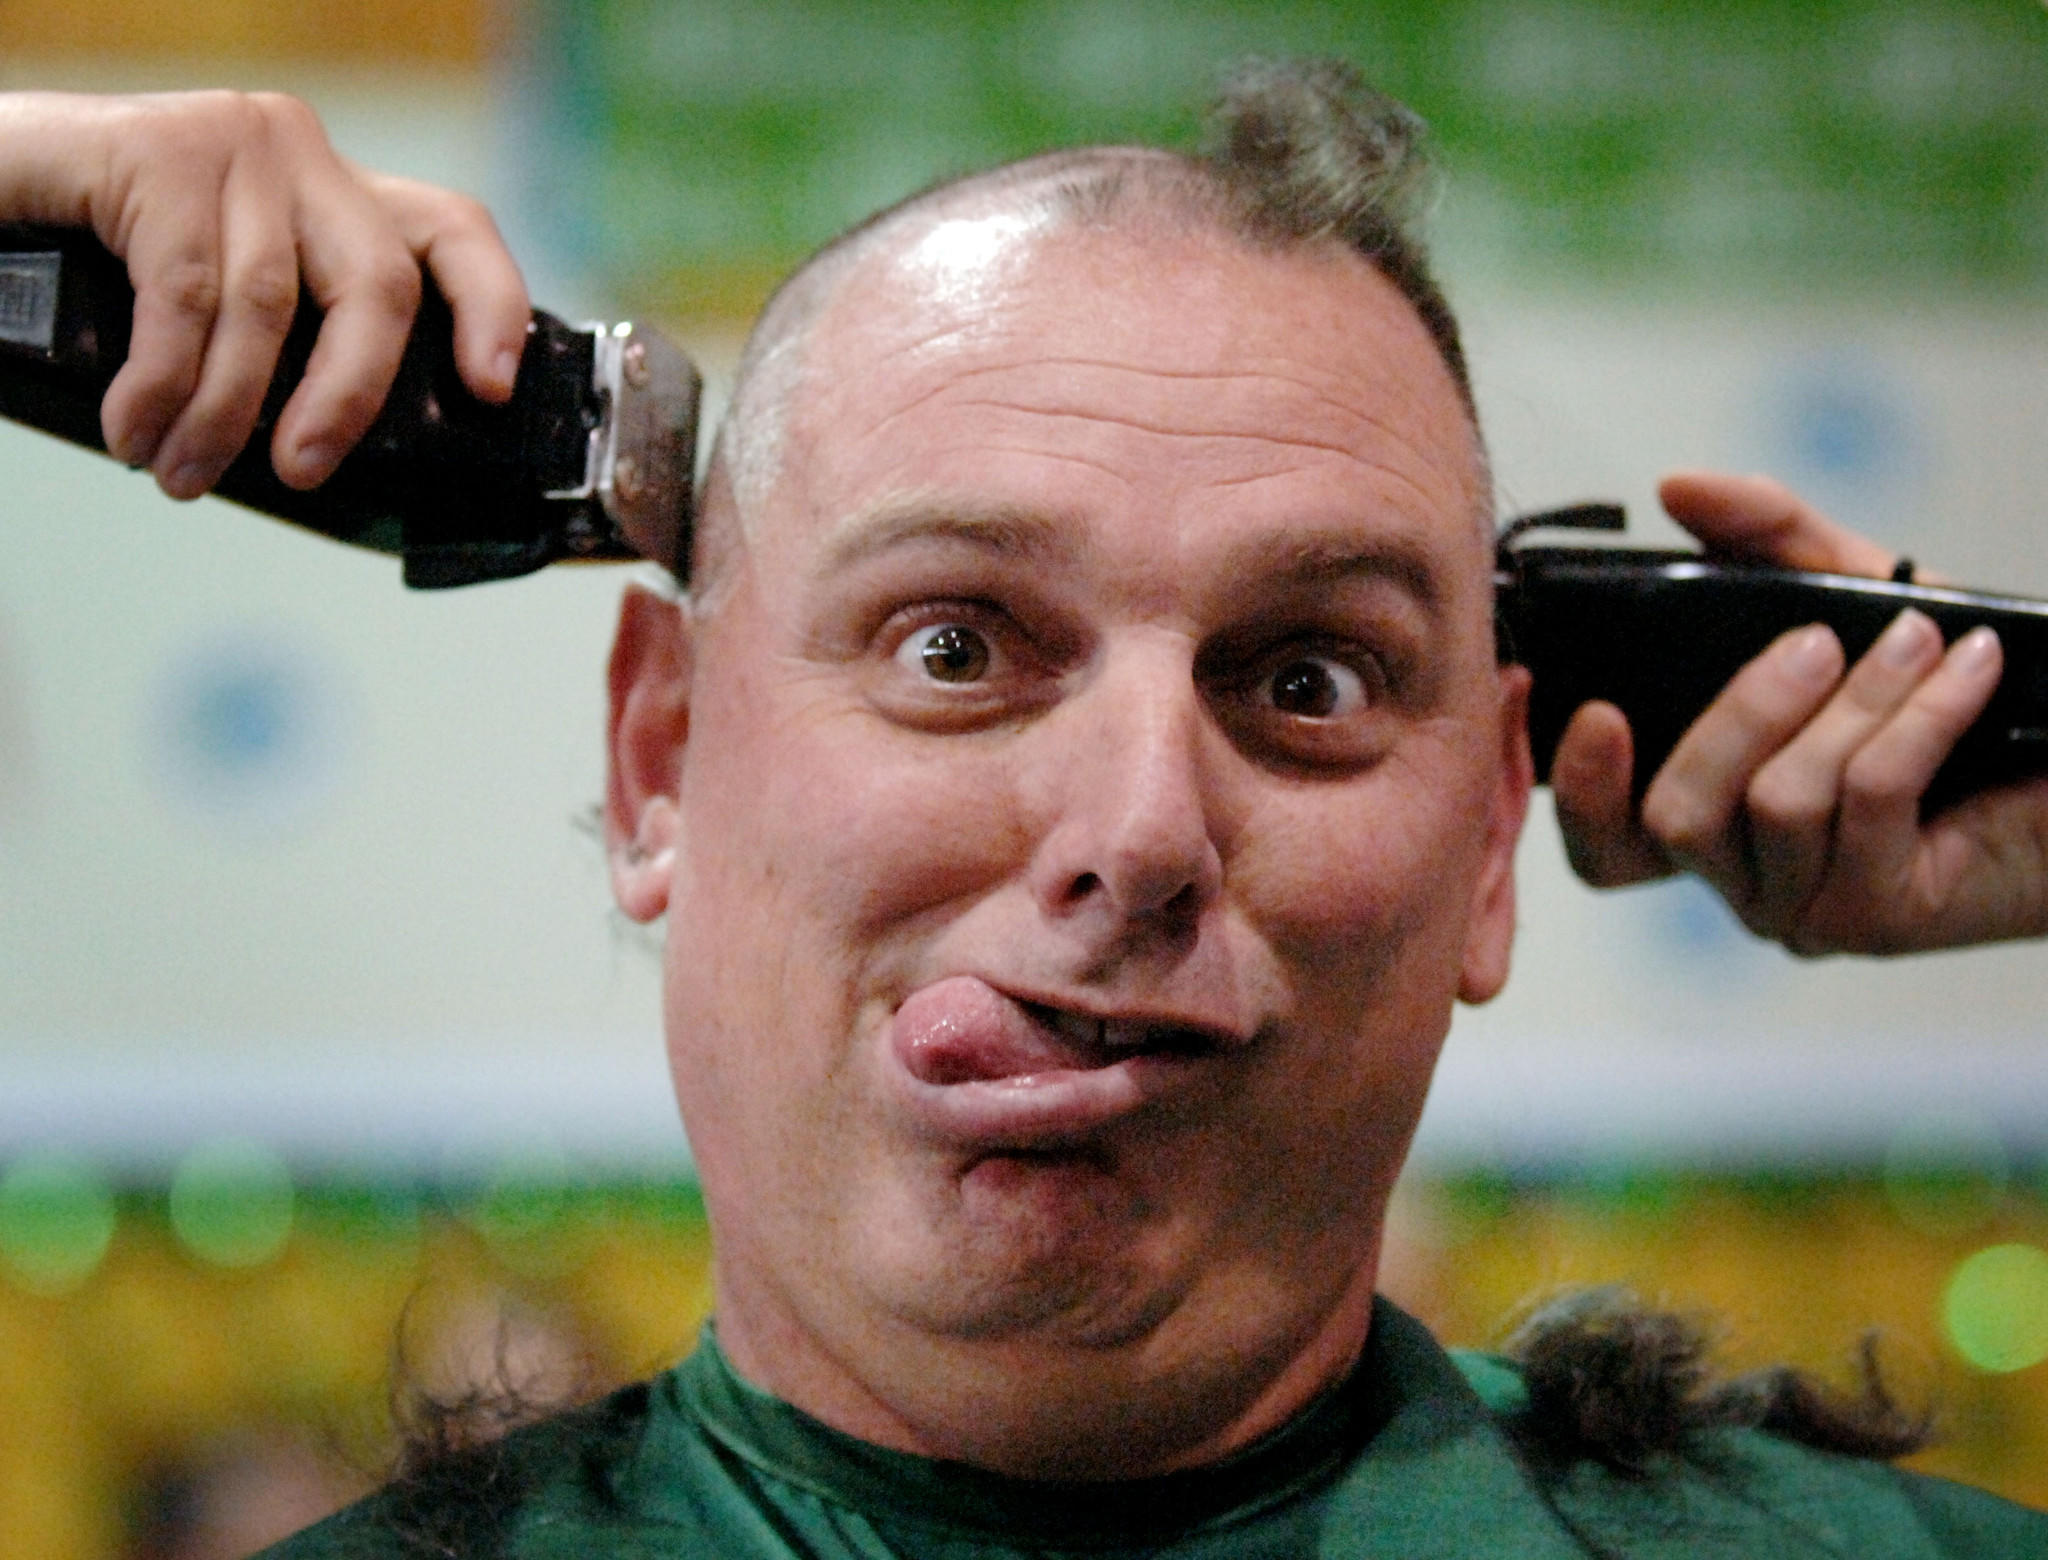 NO USE EXCEPT SUN SENTINEL; NO SHARING; NO RIGHTS (mr)flpbaldricks0404a, Boca Raton, 4/4/2008 -- Olympic Heights High School Principal Peter Licata makes a face at photographers while having his head shaved at the school's 4th annual St. Baldricks's Foundation Shaving the Way to Conquer Kids' Cancer event Friday. Fourteen staff members and about 75 students took part and had their heads shaved to raise money for the organization that raises money for childhood cancer research. This years event at Olympic Heights is estimated to raise as much as $30,000. Staff Photo By Mark Randall ORG XMIT: S-S0804041200262723